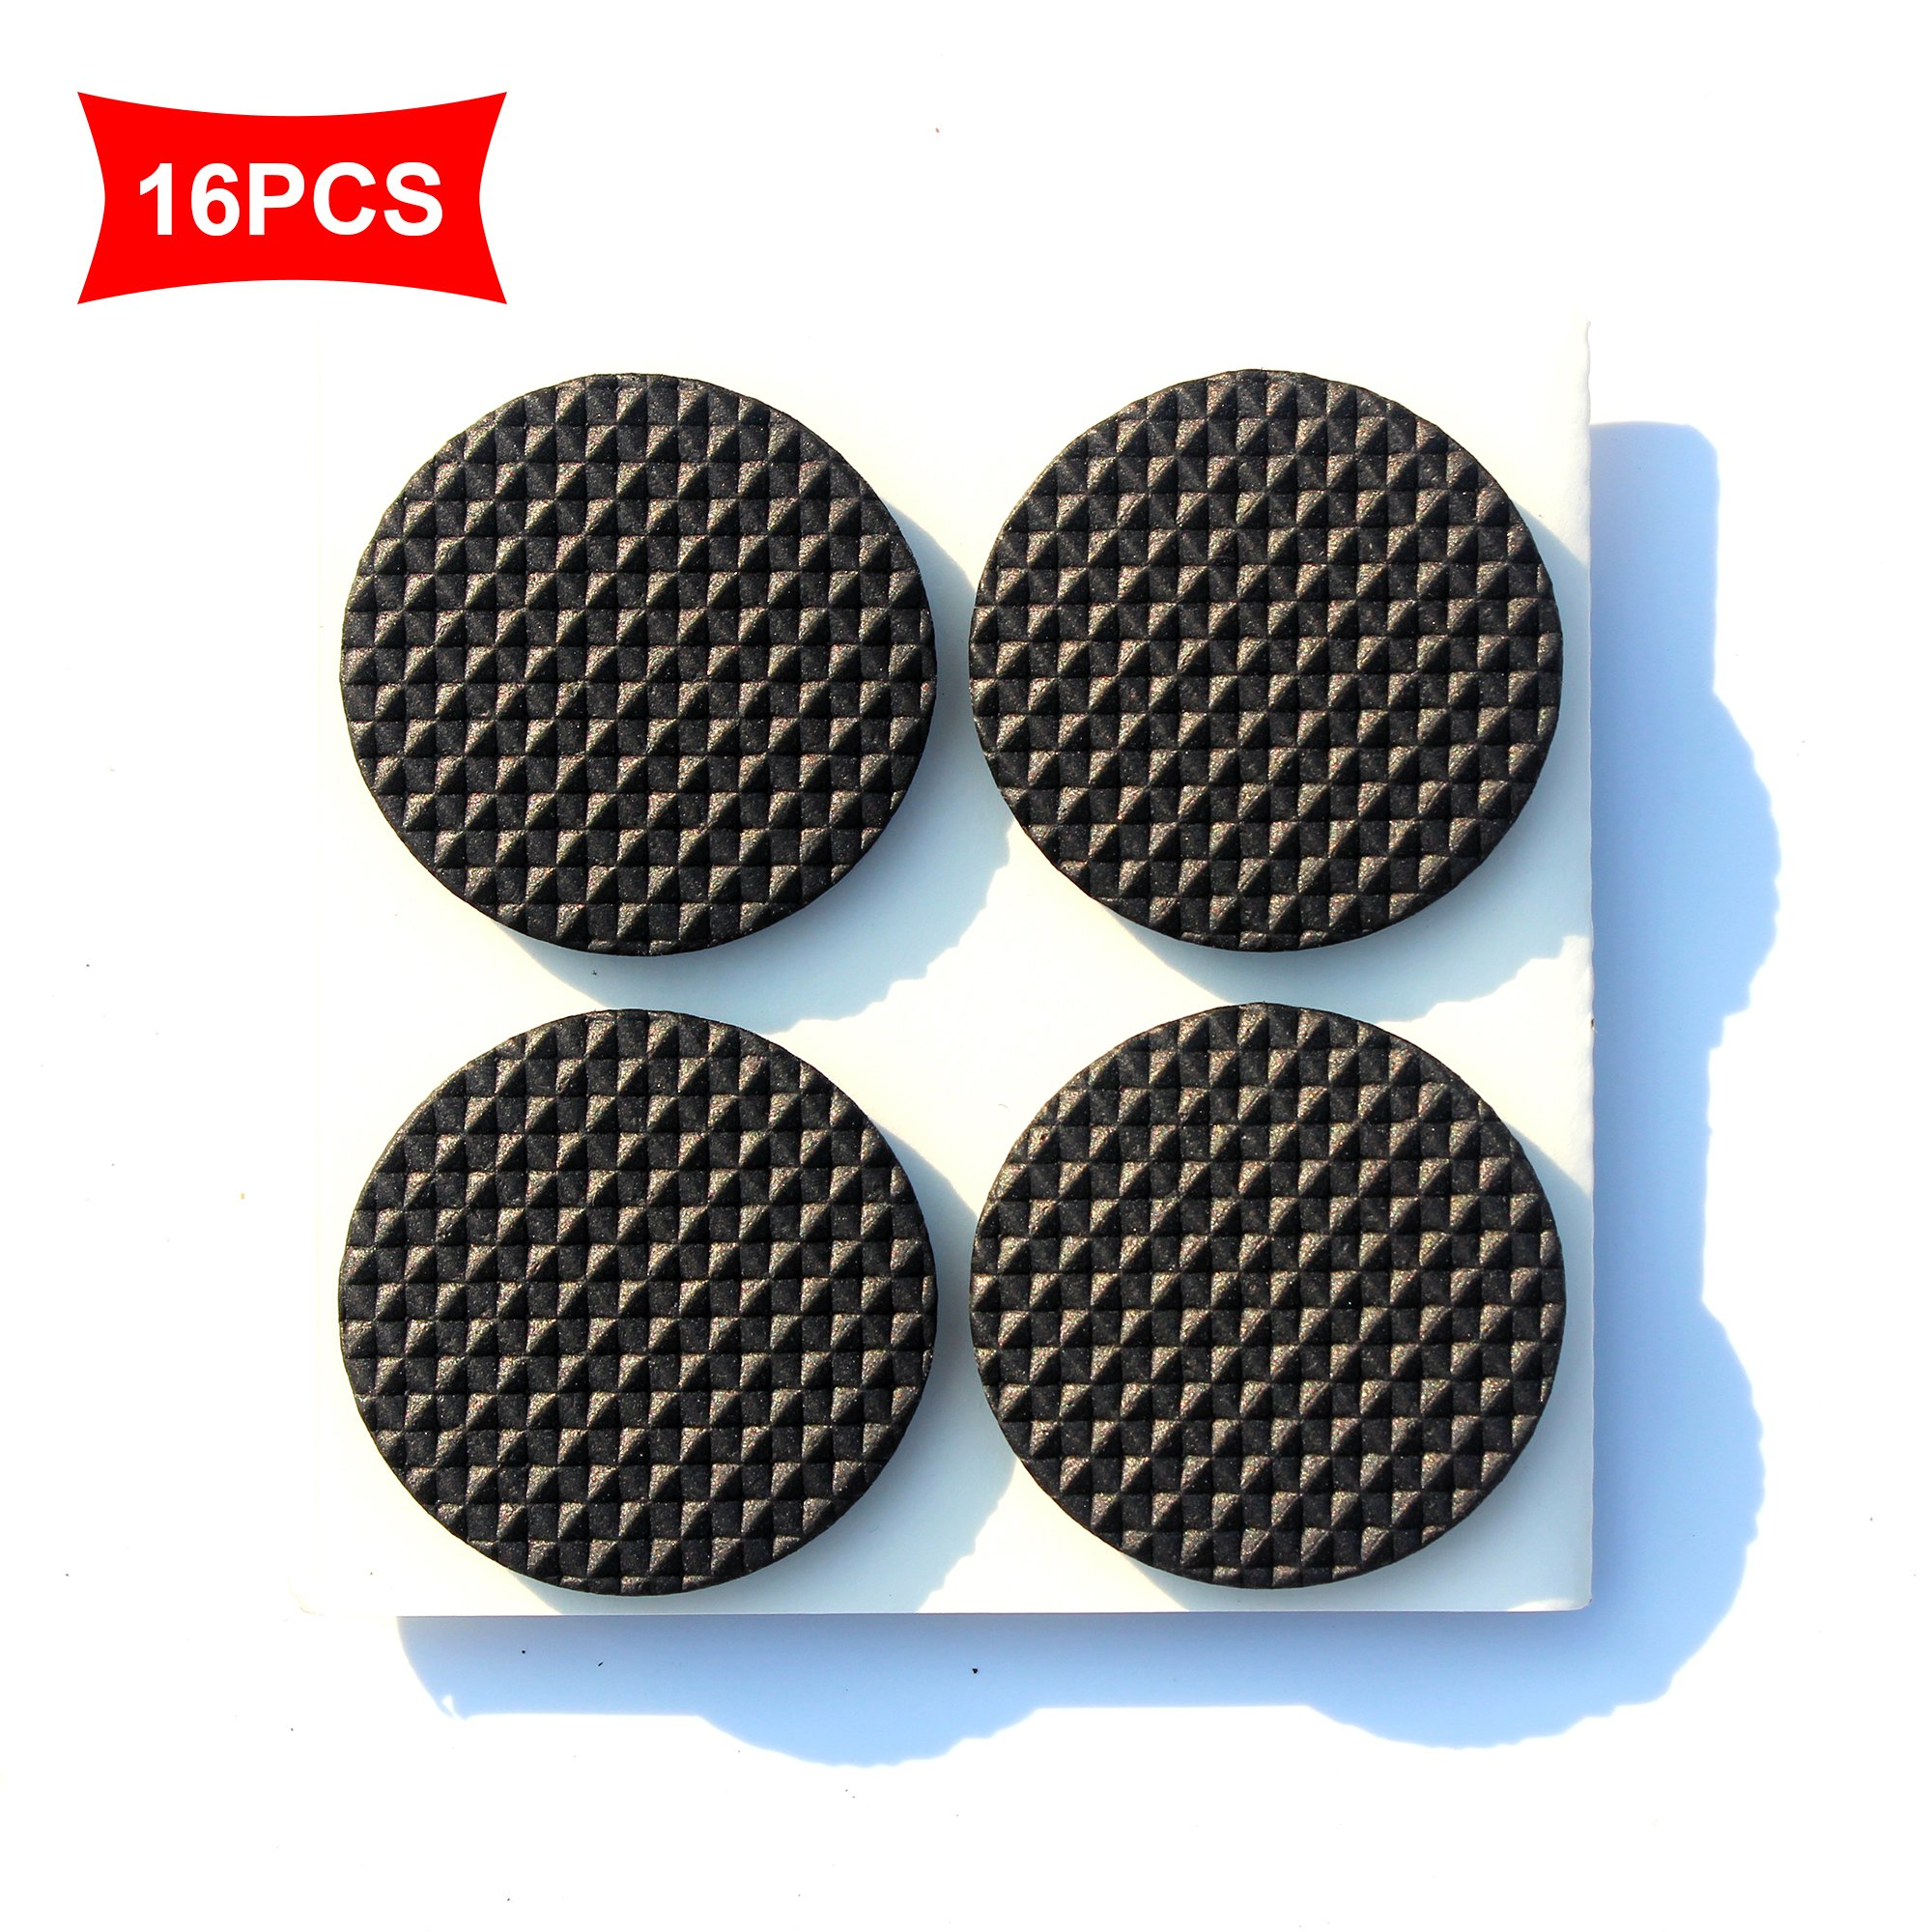 Premium Furniture Pads,Thick Non-Slip Rubber (No glue or Nails) Pad Foot Cover Self-Furniture Gripper - Stops Slide -- Adhesive Pads - Protectors (Round 1 inch 36PCS)